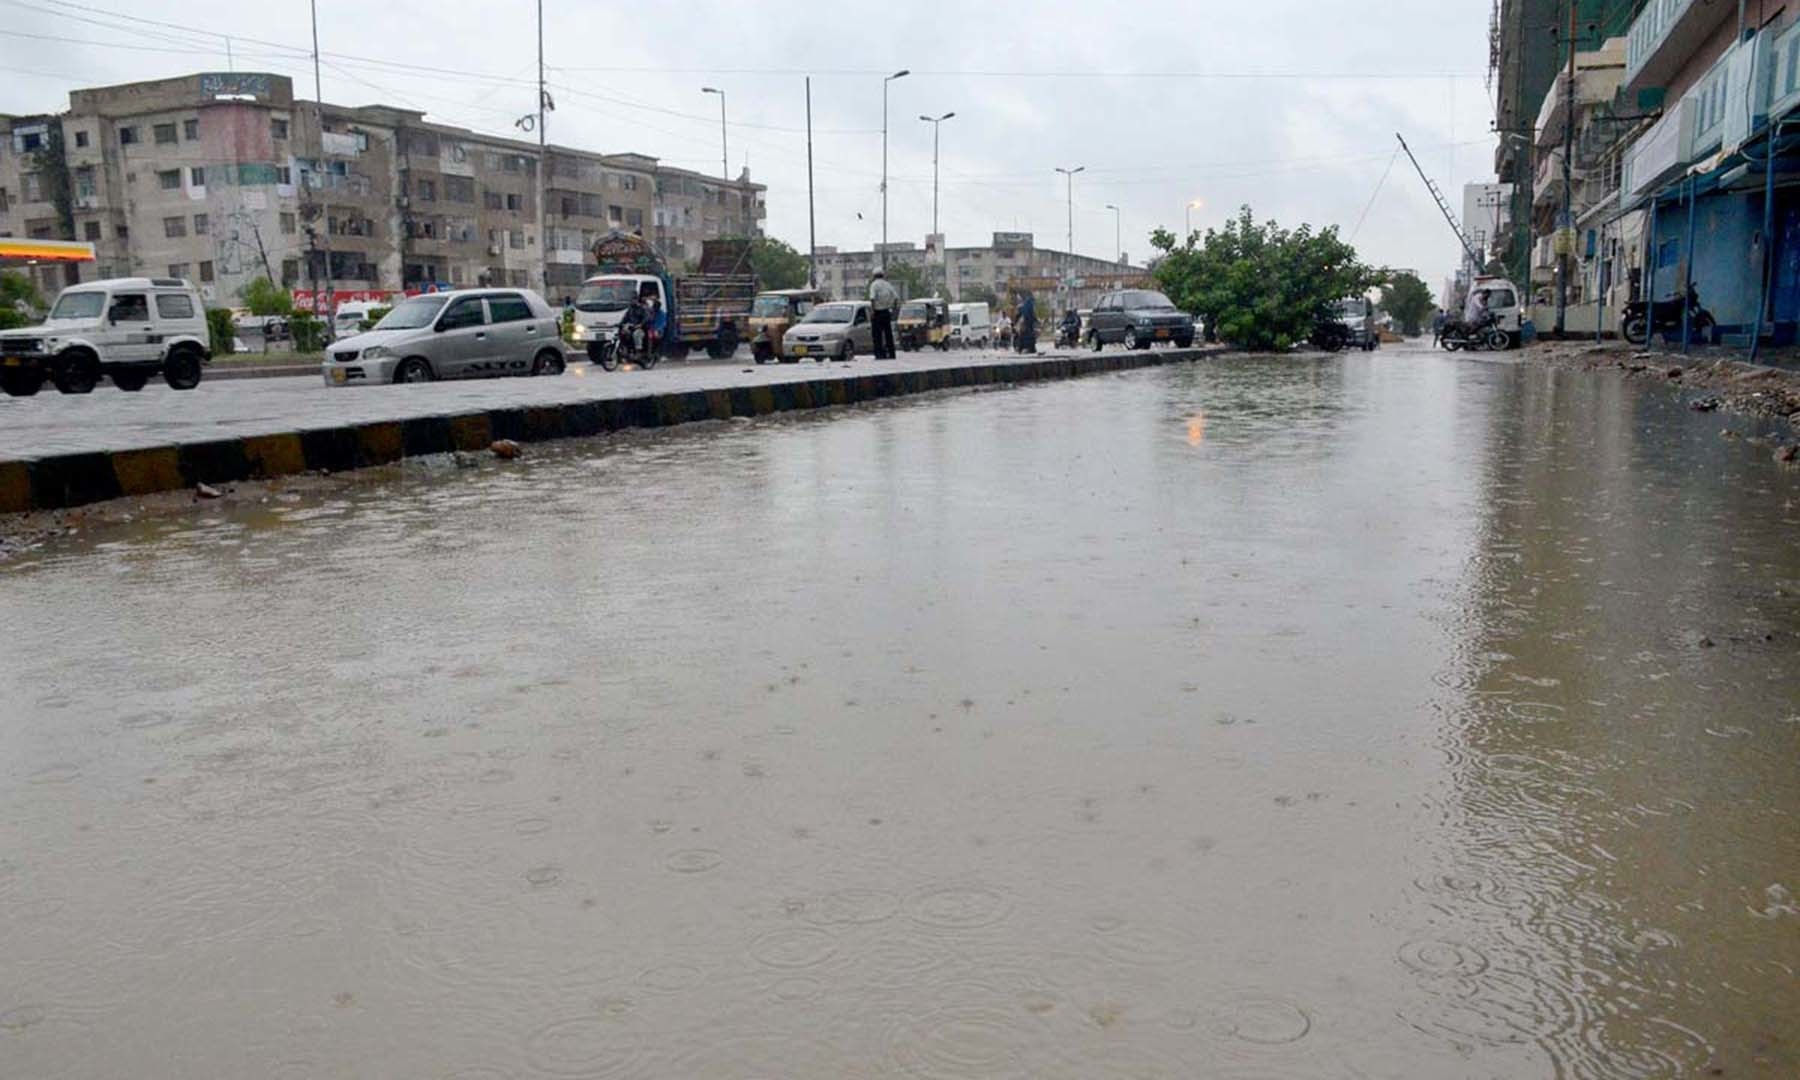 A view of stagnant water during heavy rain in Karachi on Monday. — APP